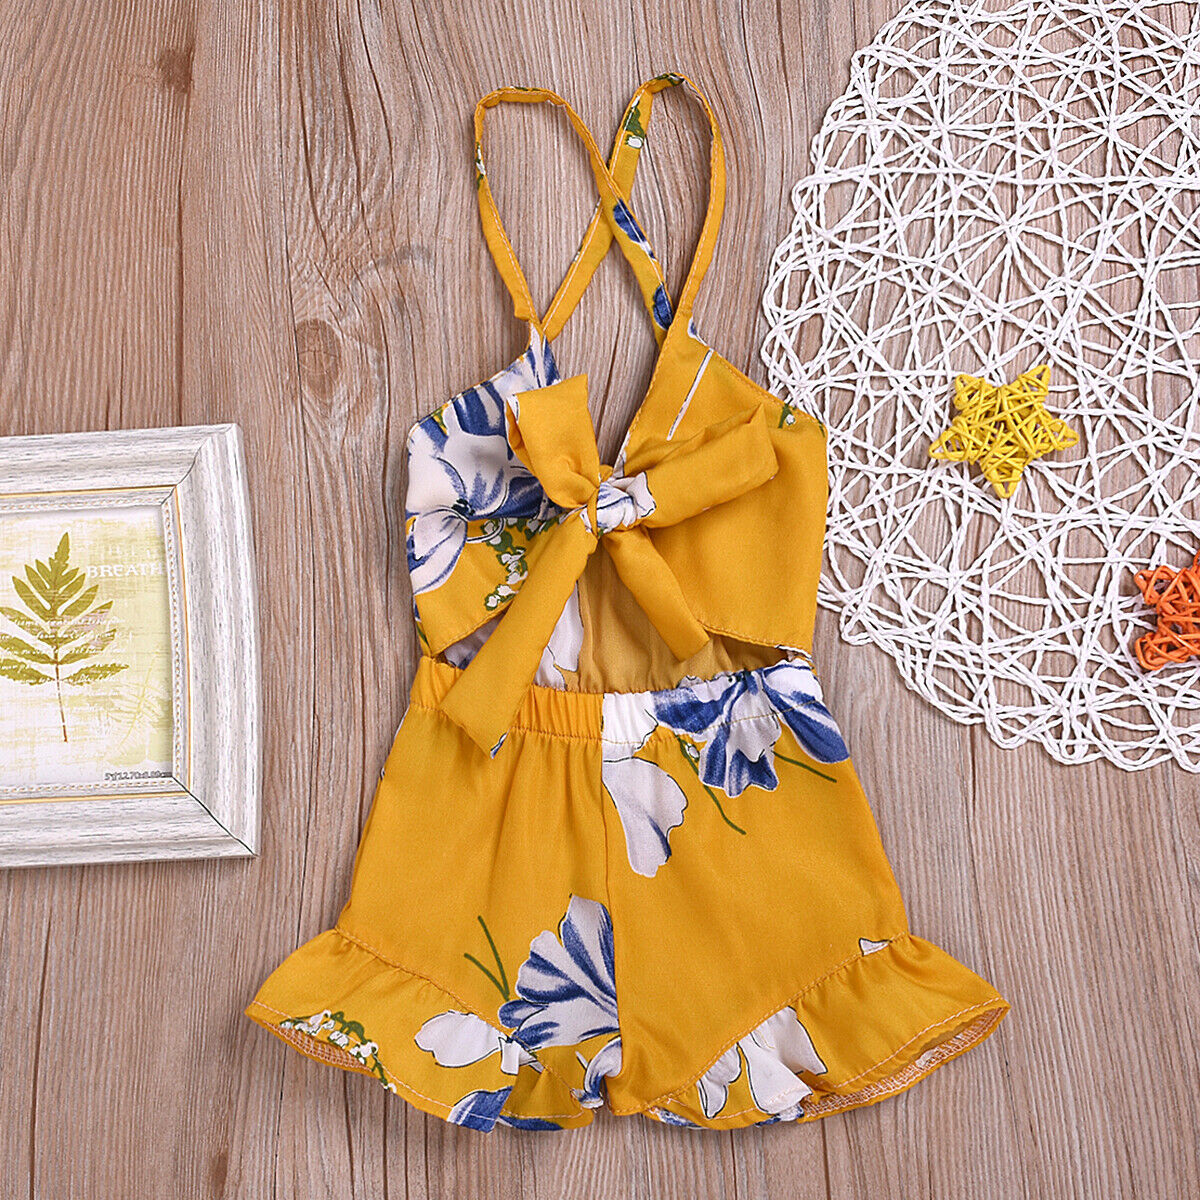 0 3Y Newborn Baby Toddler Girls Flower Romper Sleeveless Ruffle Strappy Backless Hollow Out Cute Casual Playsuit Summer Clothes in Rompers from Mother Kids